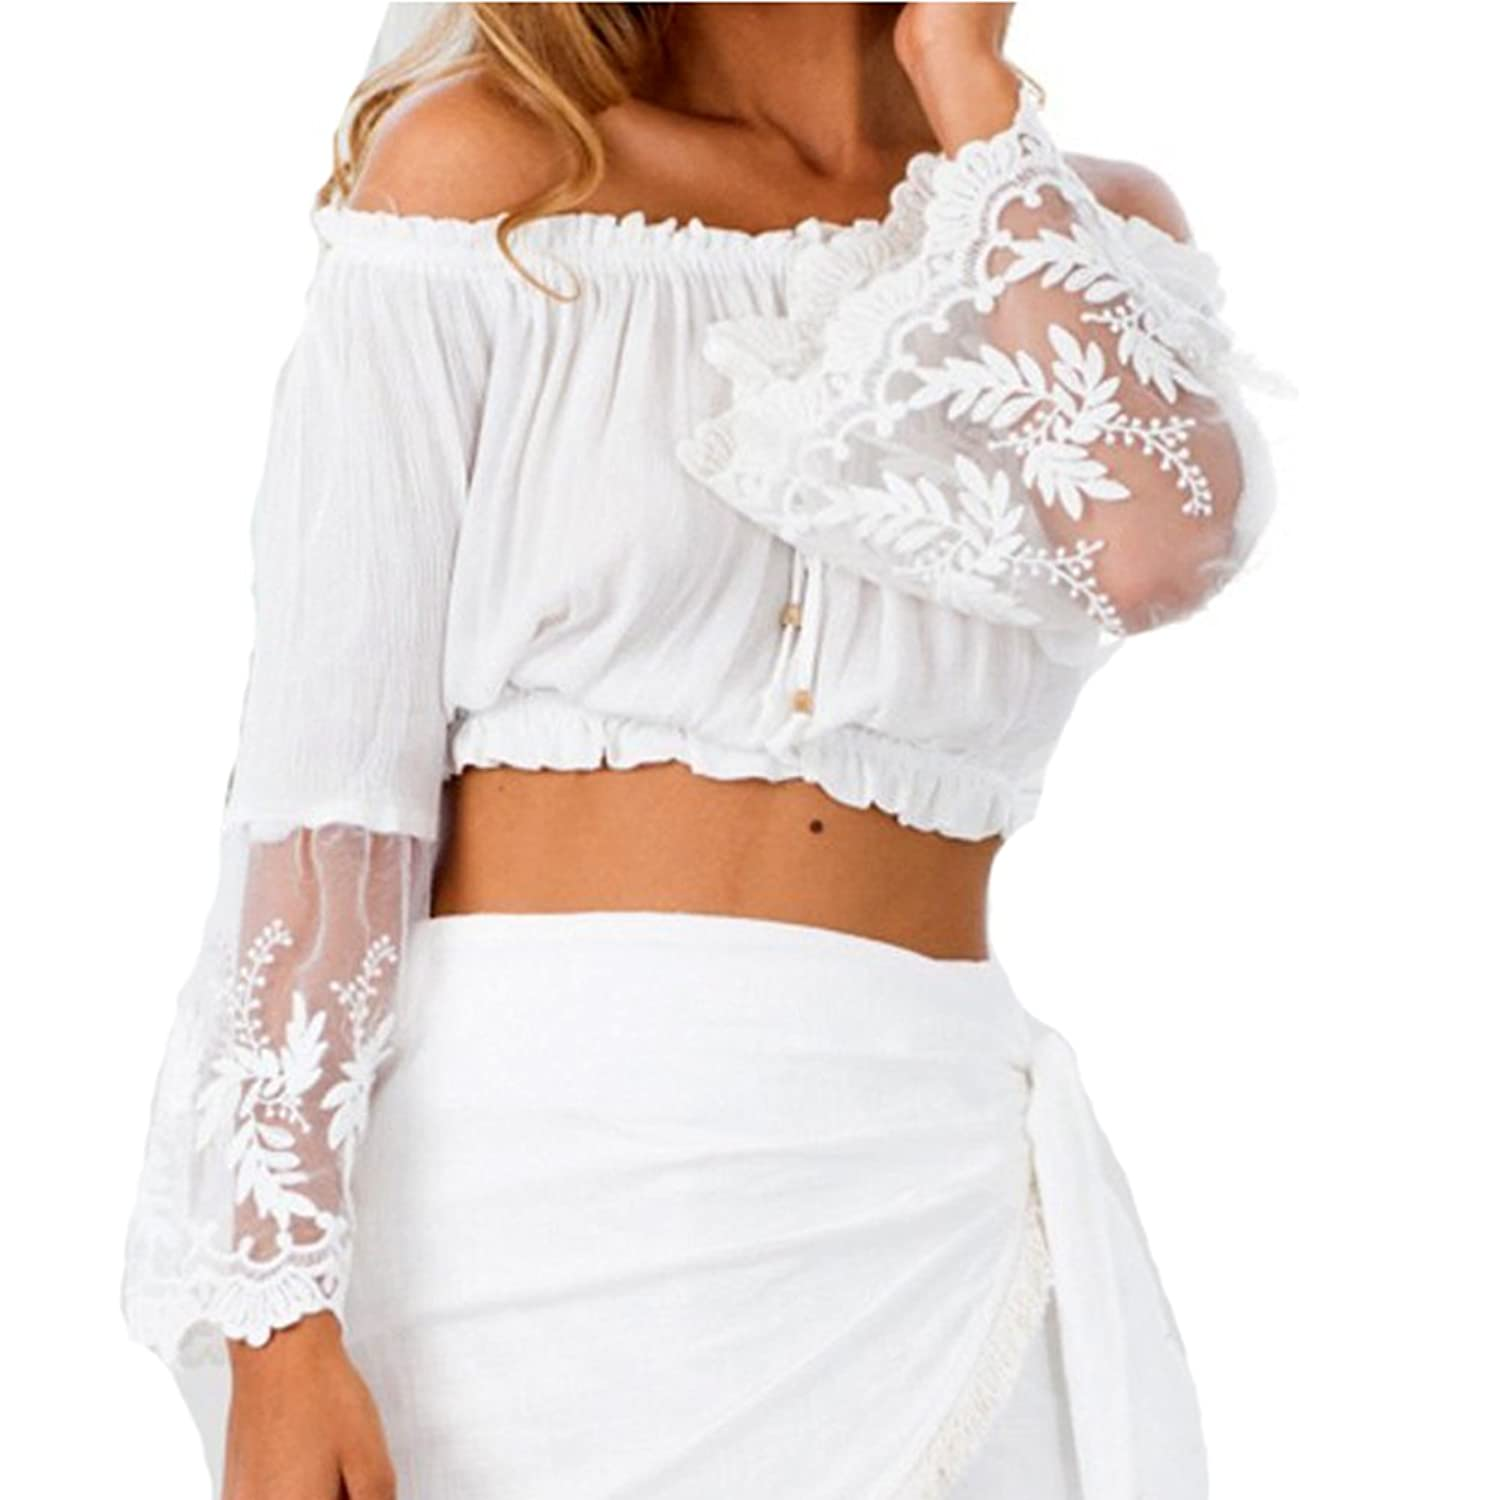 NXY Women's Off Shoulder Stripe Casual Blouse Shirt Top Cher Lace Crop White